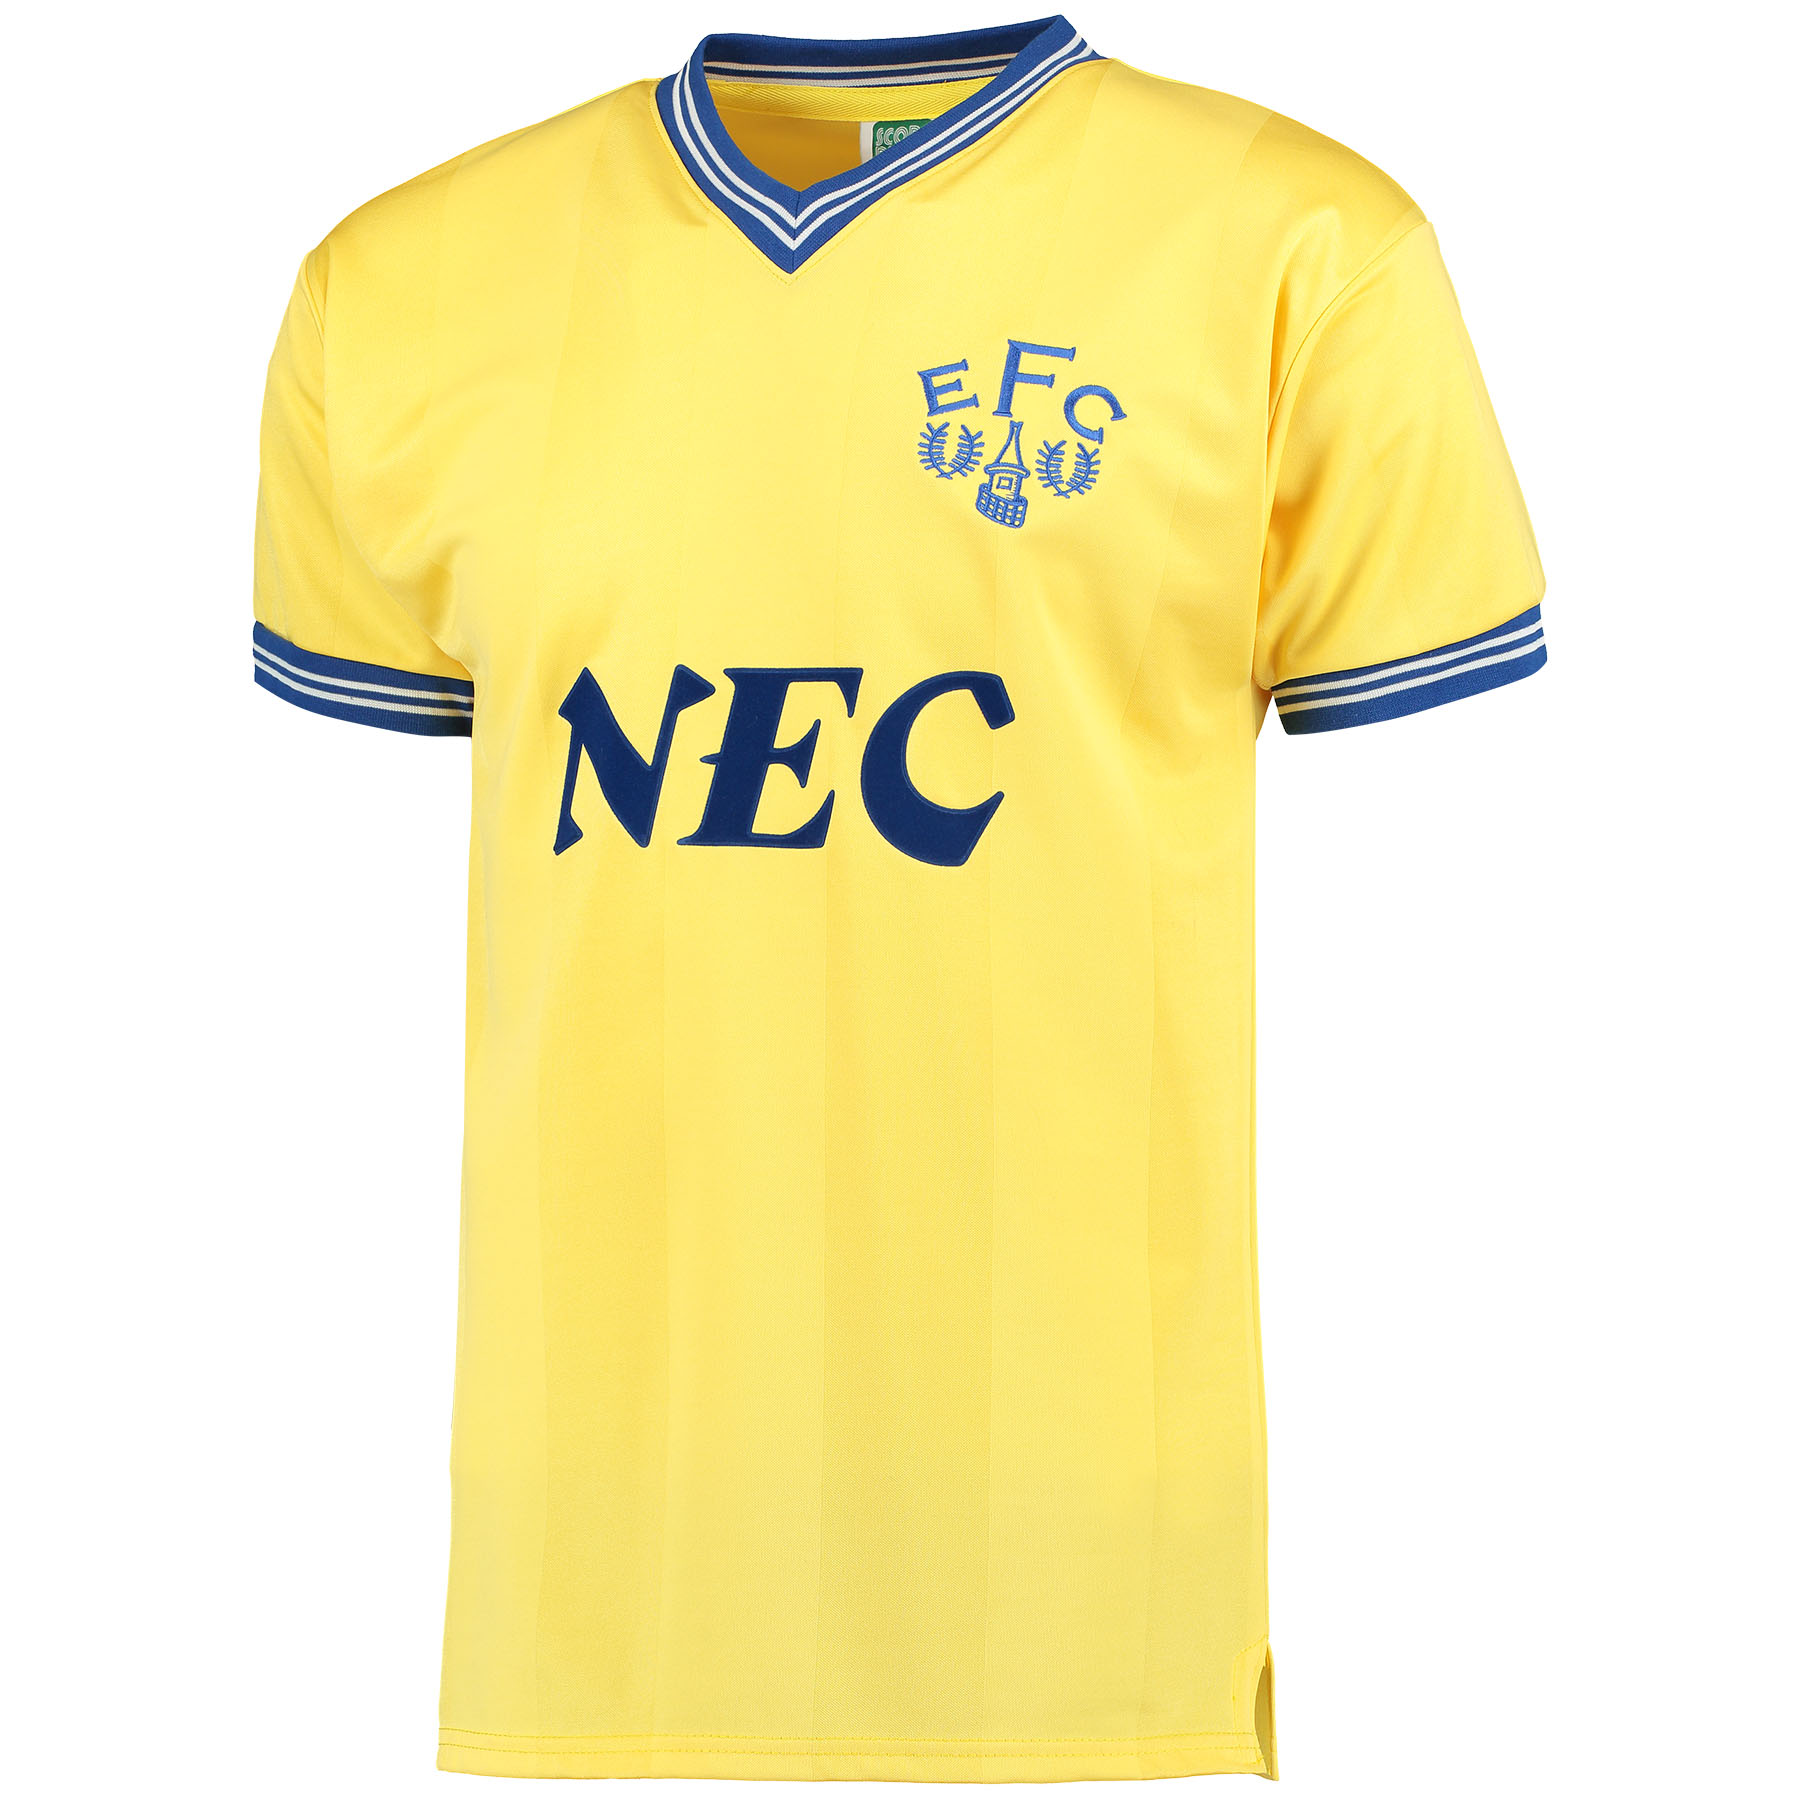 Everton 1986 Away Shirt - Yellow